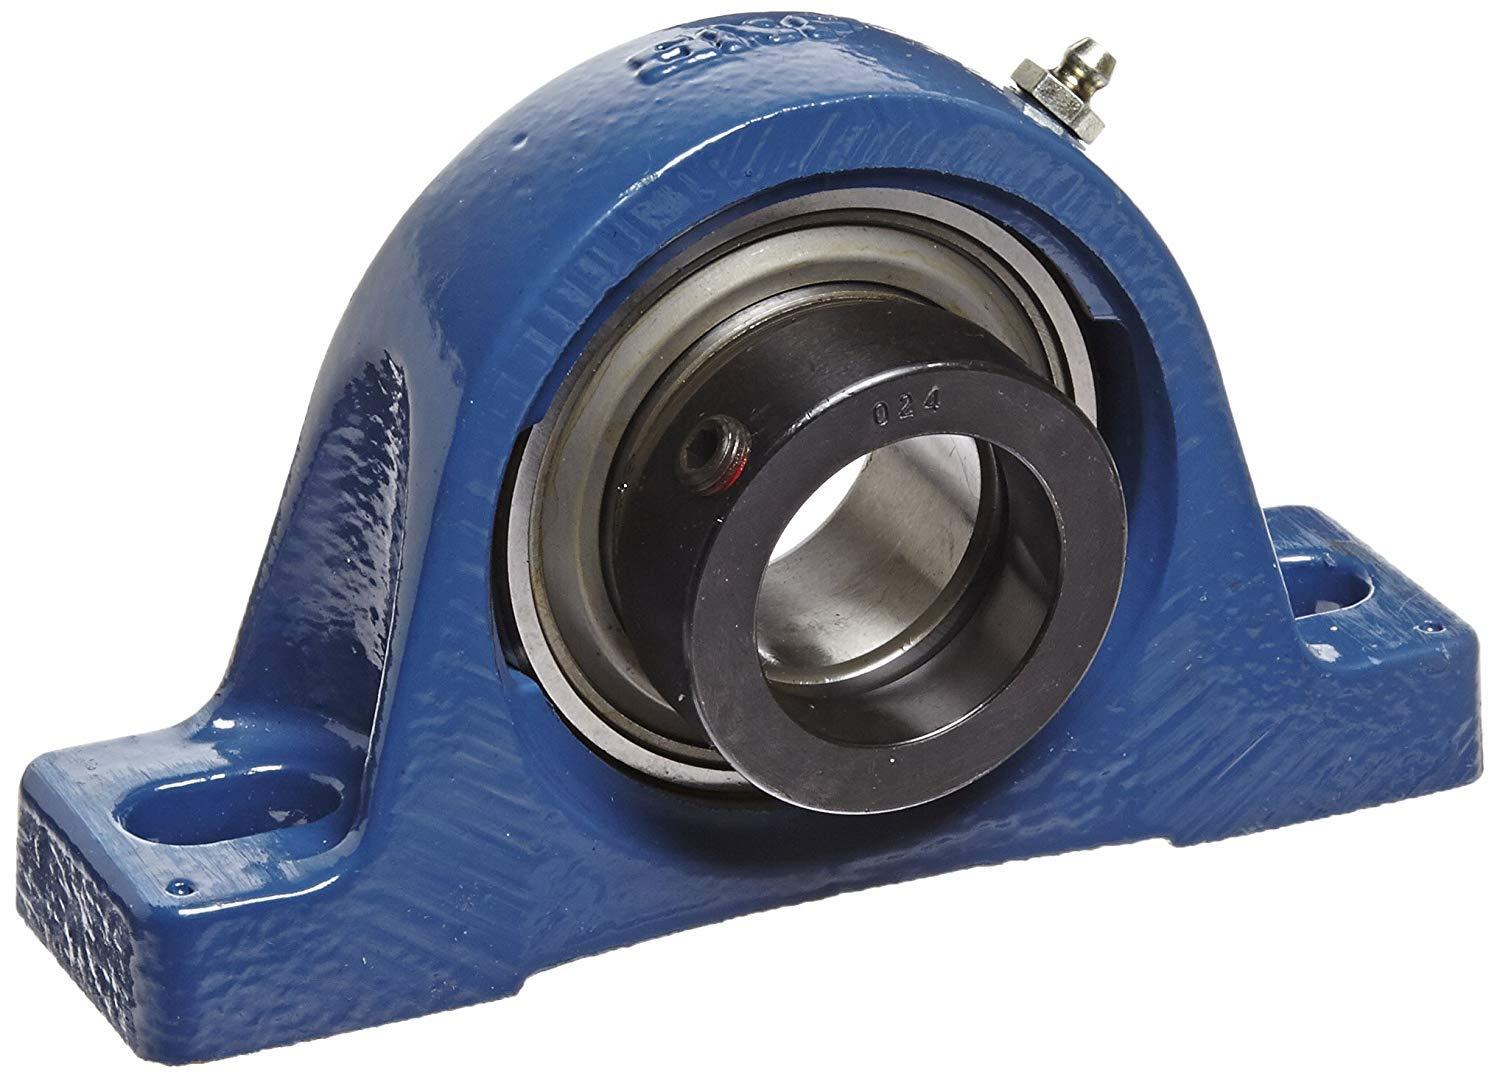 3-3//4 to 4-1//2 Bolt Hole Spacing 1-5//16 Base to Center Height 1 Shaft 3-3//4 to 4-1//2 Bolt Hole Spacing 1-5//16 Base to Center Height Normal Duty Eccentric Collar 2 Bolts Contact Seals SKF P2BL 100-FM Pillow Block Ball Bearing 1 Shaft